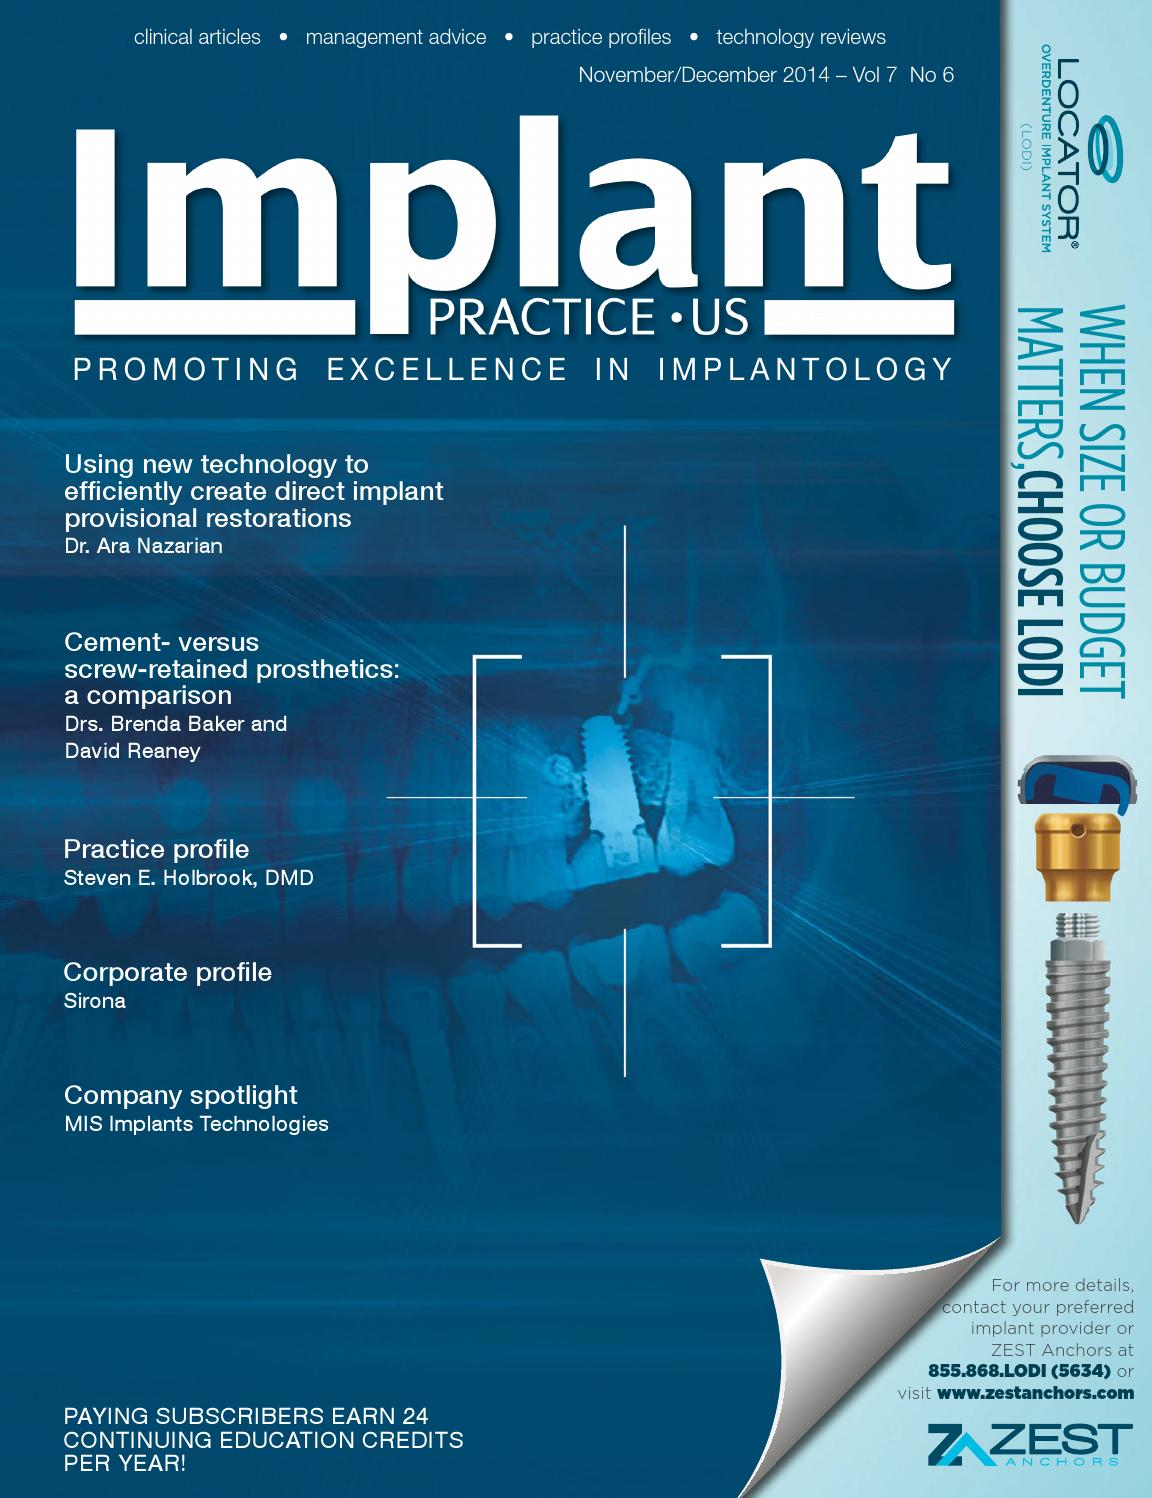 Implant Practice US November/December 2014 Issue - Vol7 6 by